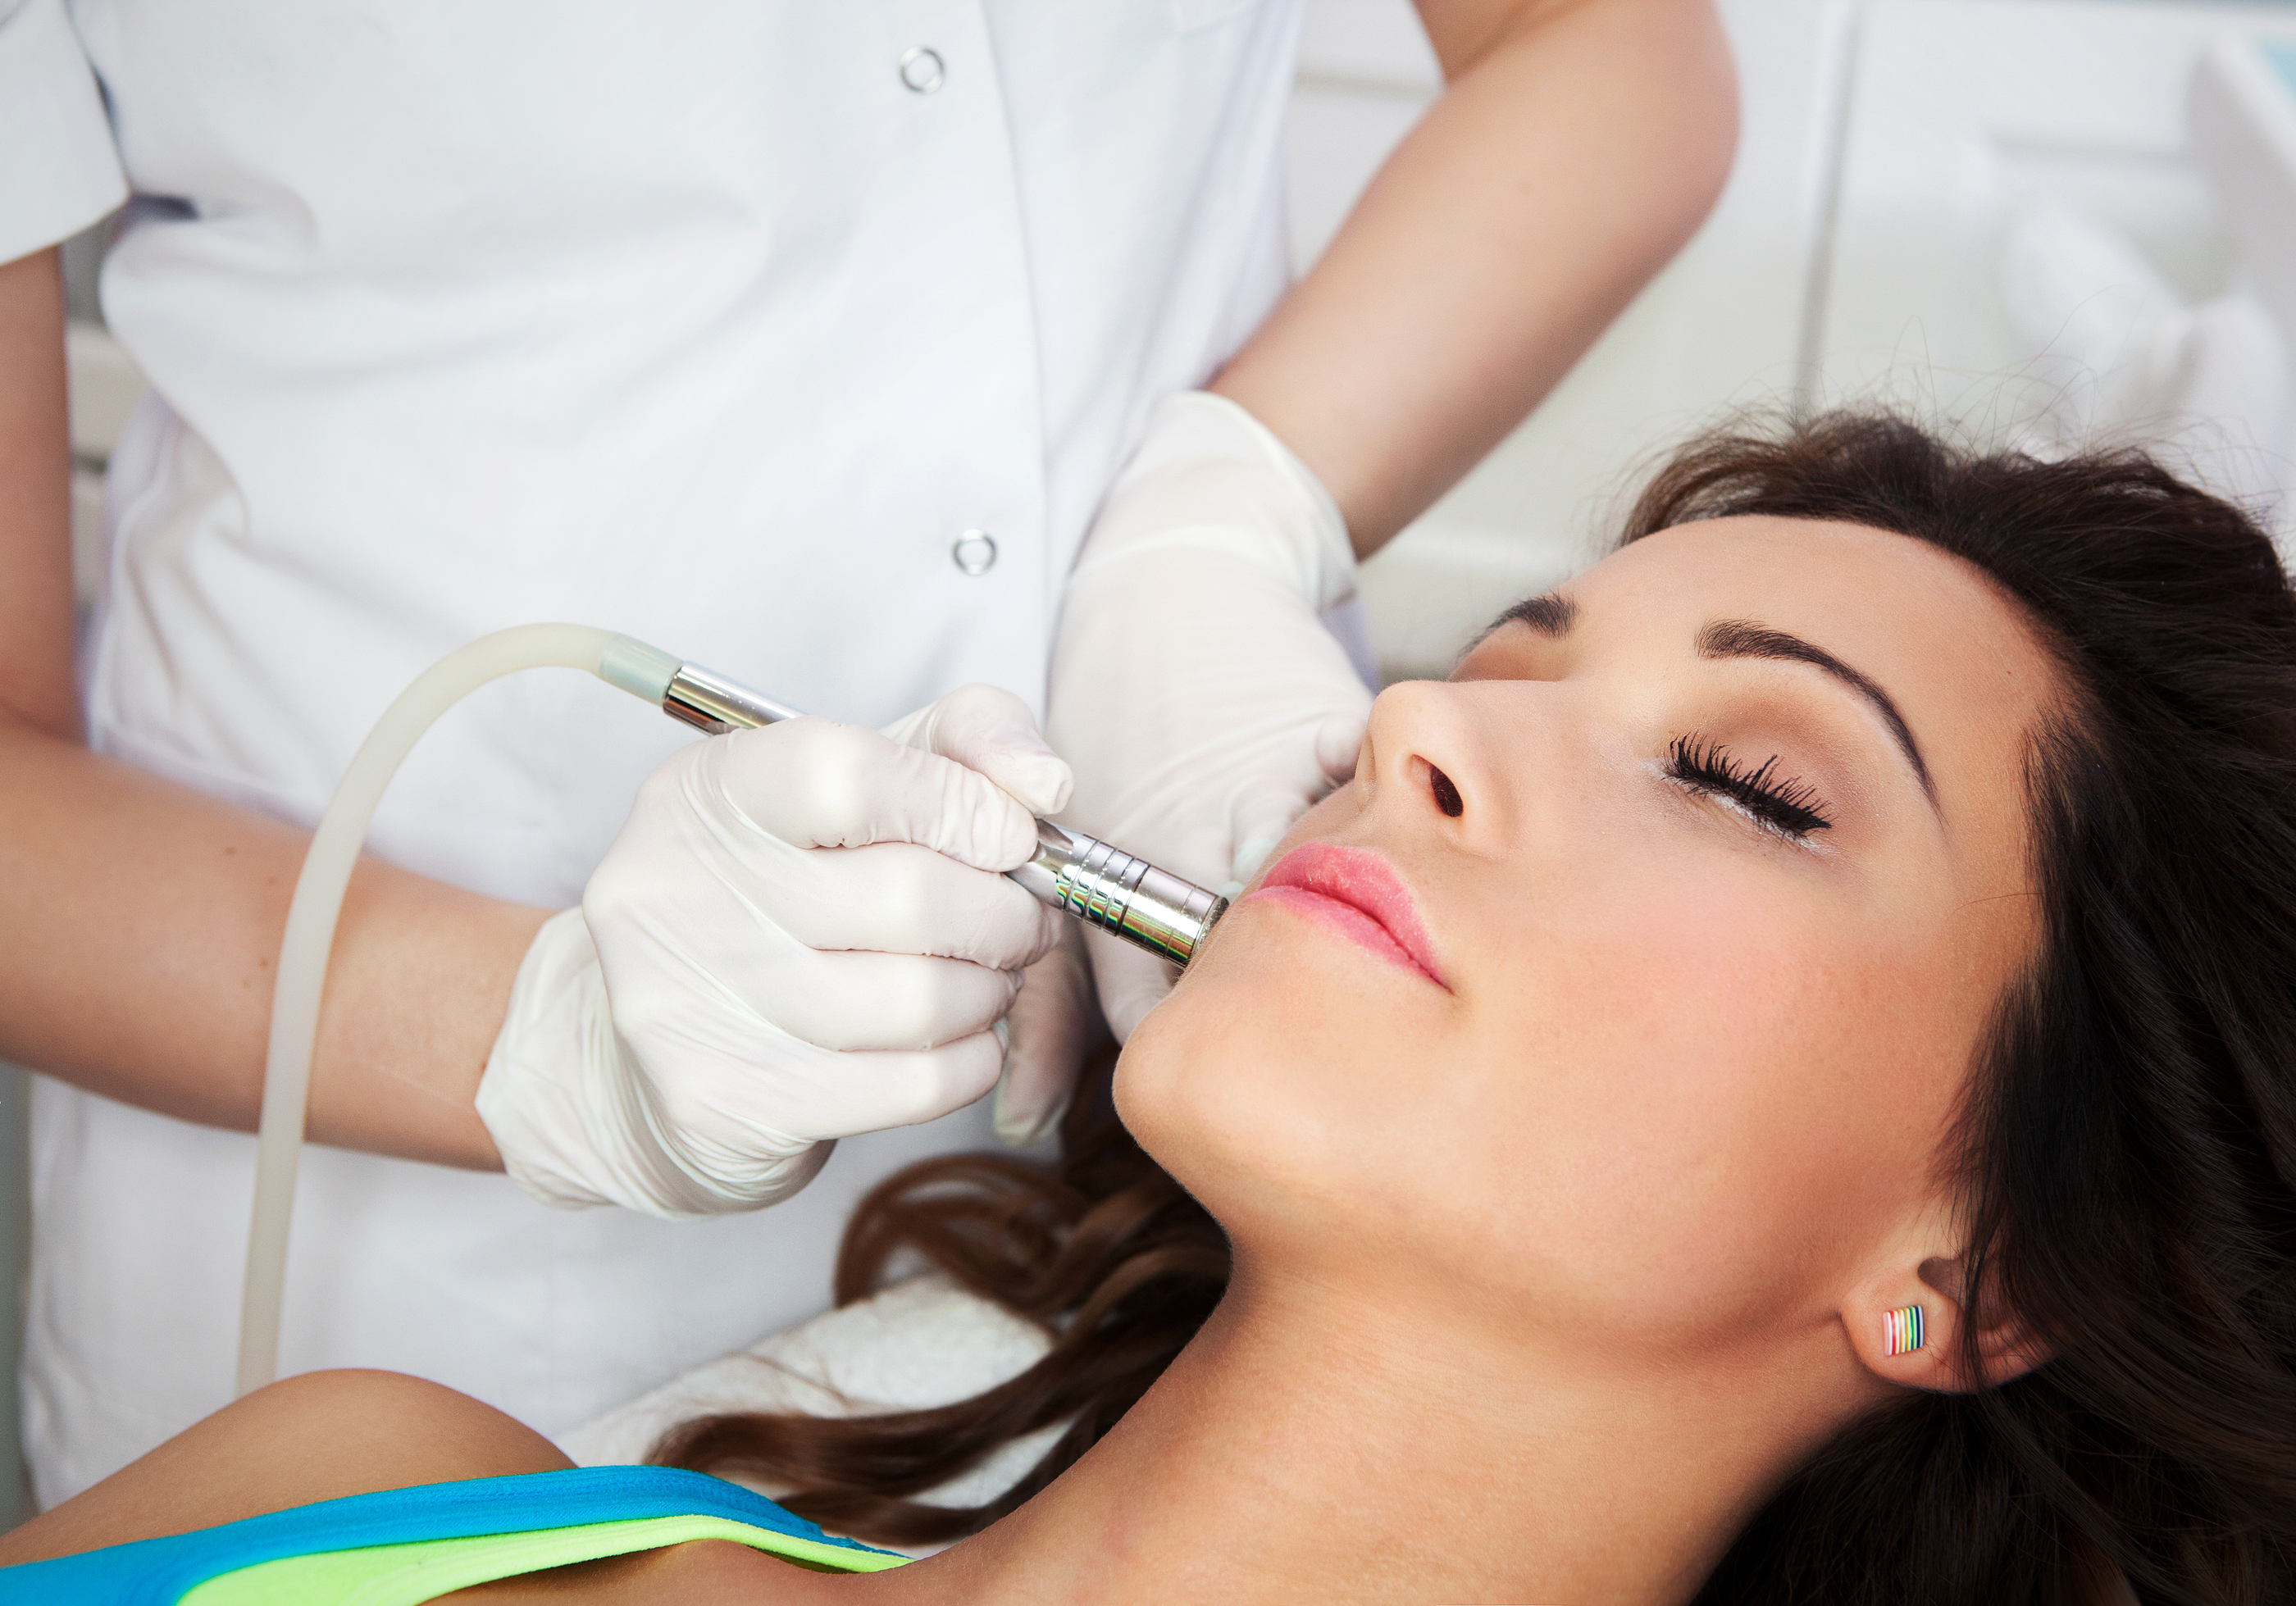 Skin Issues That Can Be Treated with Laser Skin Resurfacing